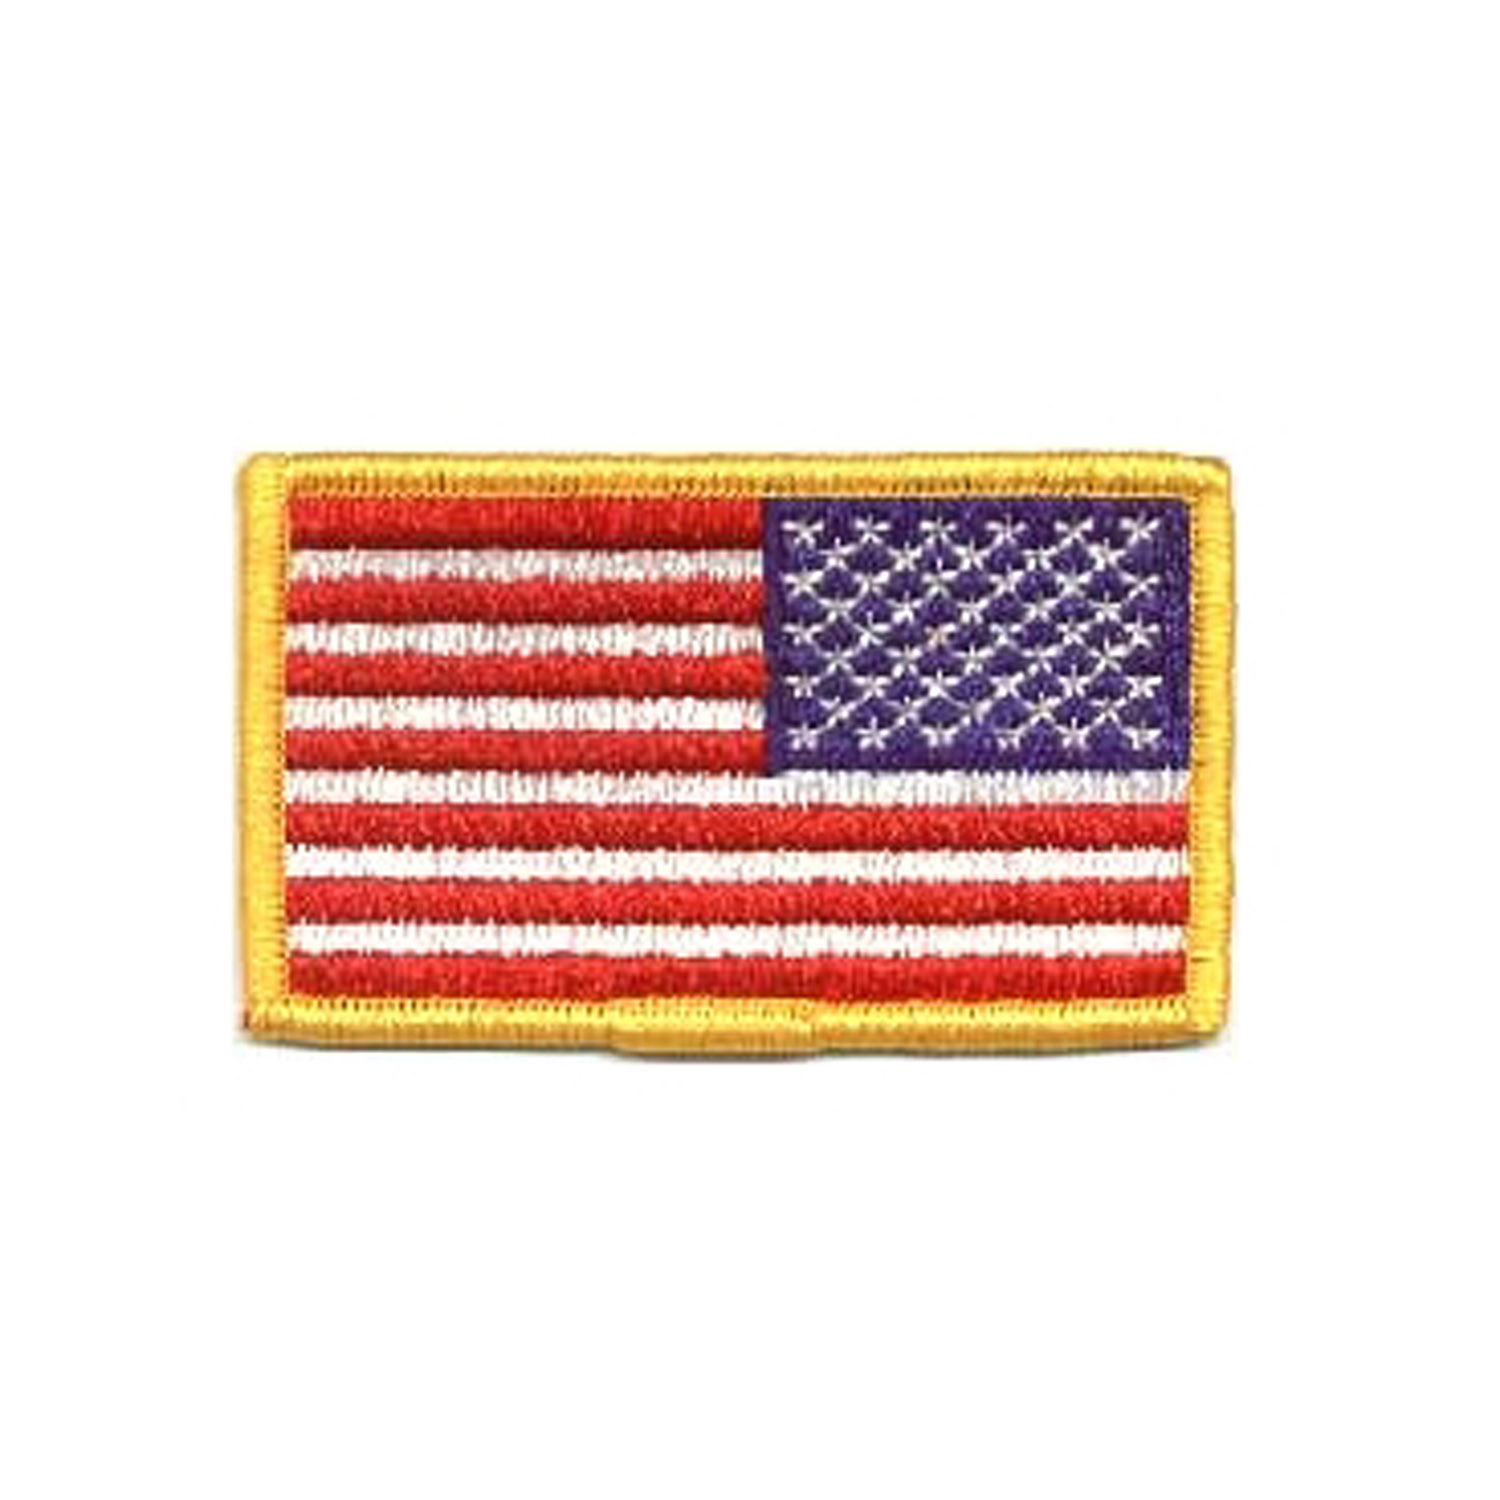 Military Patches: Reversed Flag Emblem for Right Sleeve